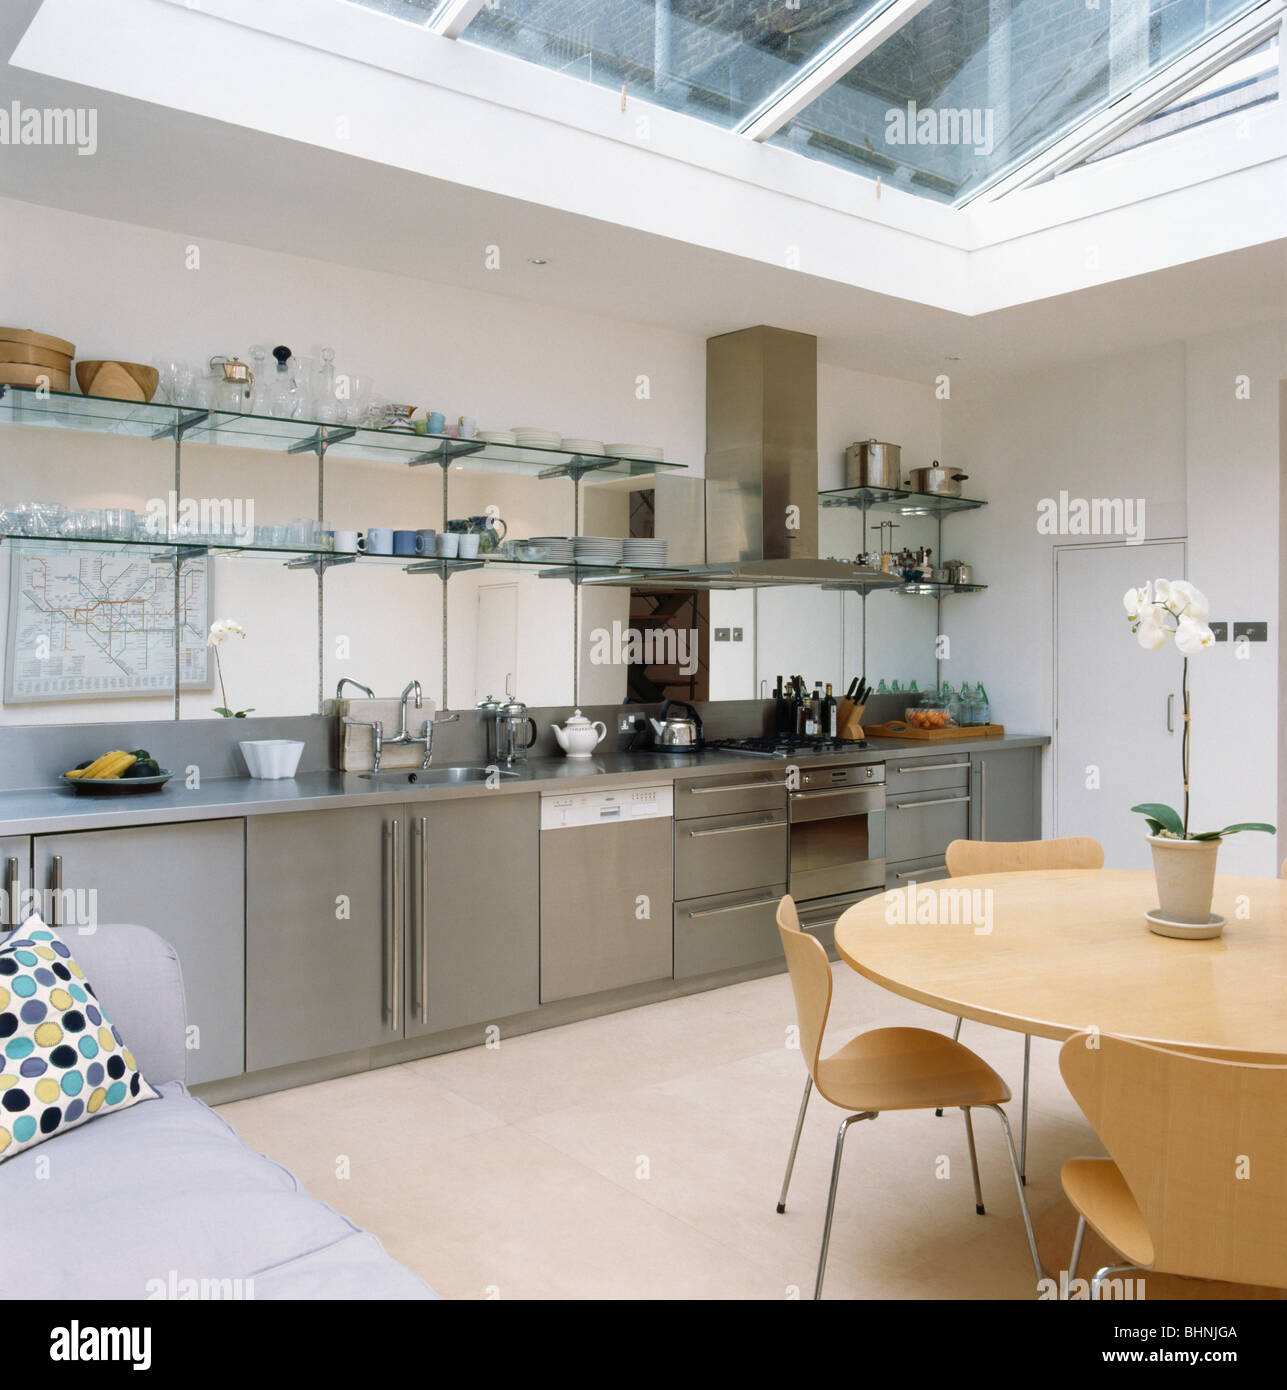 Superieur Glass Shelving Above Stainless Steel Fitted Units In Modern Kitchen Dining  Room Extension